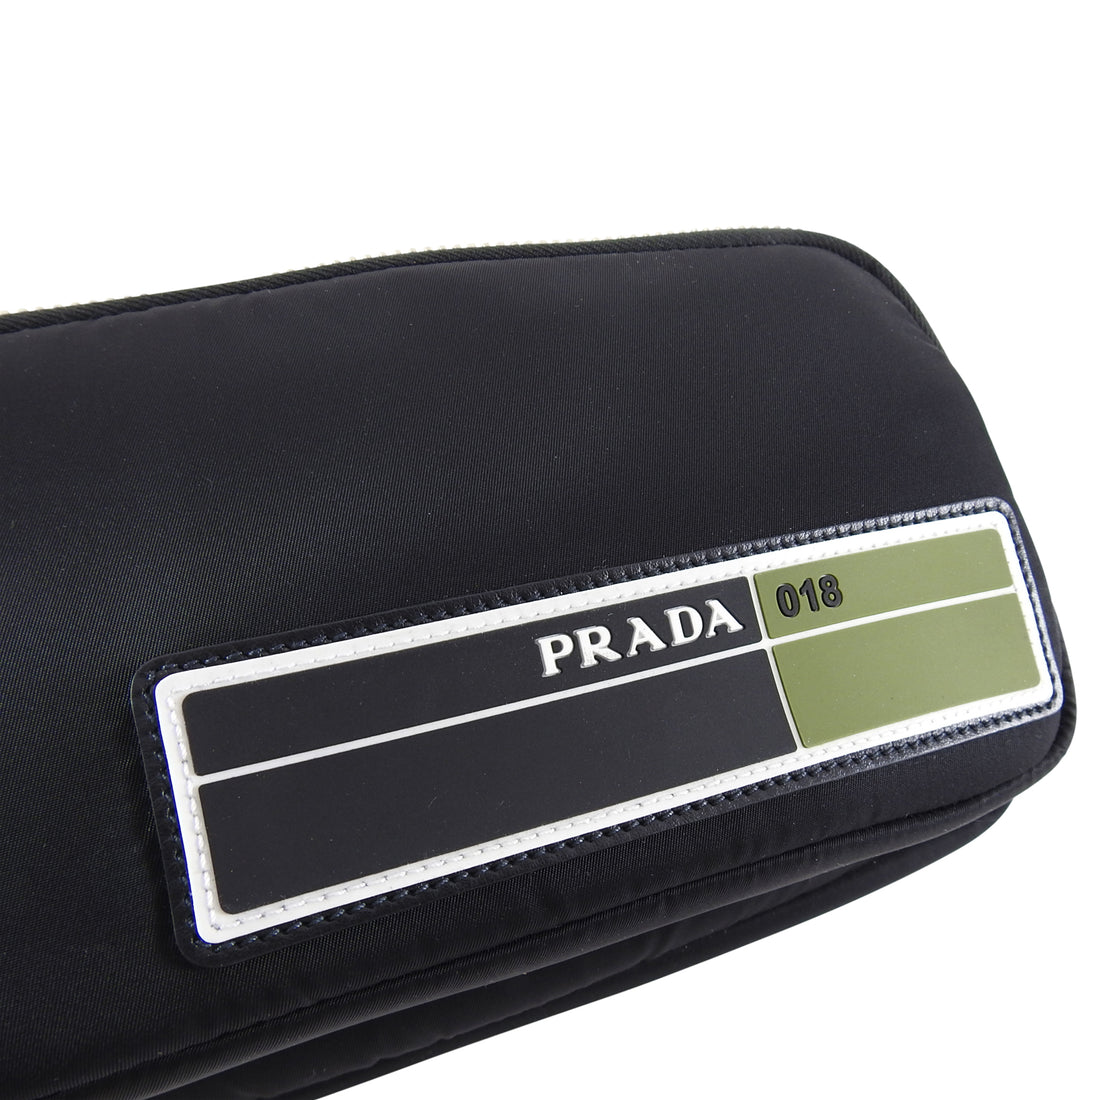 Prada Fall 2019 Technical Fabric Pouch Black Nylon Bag